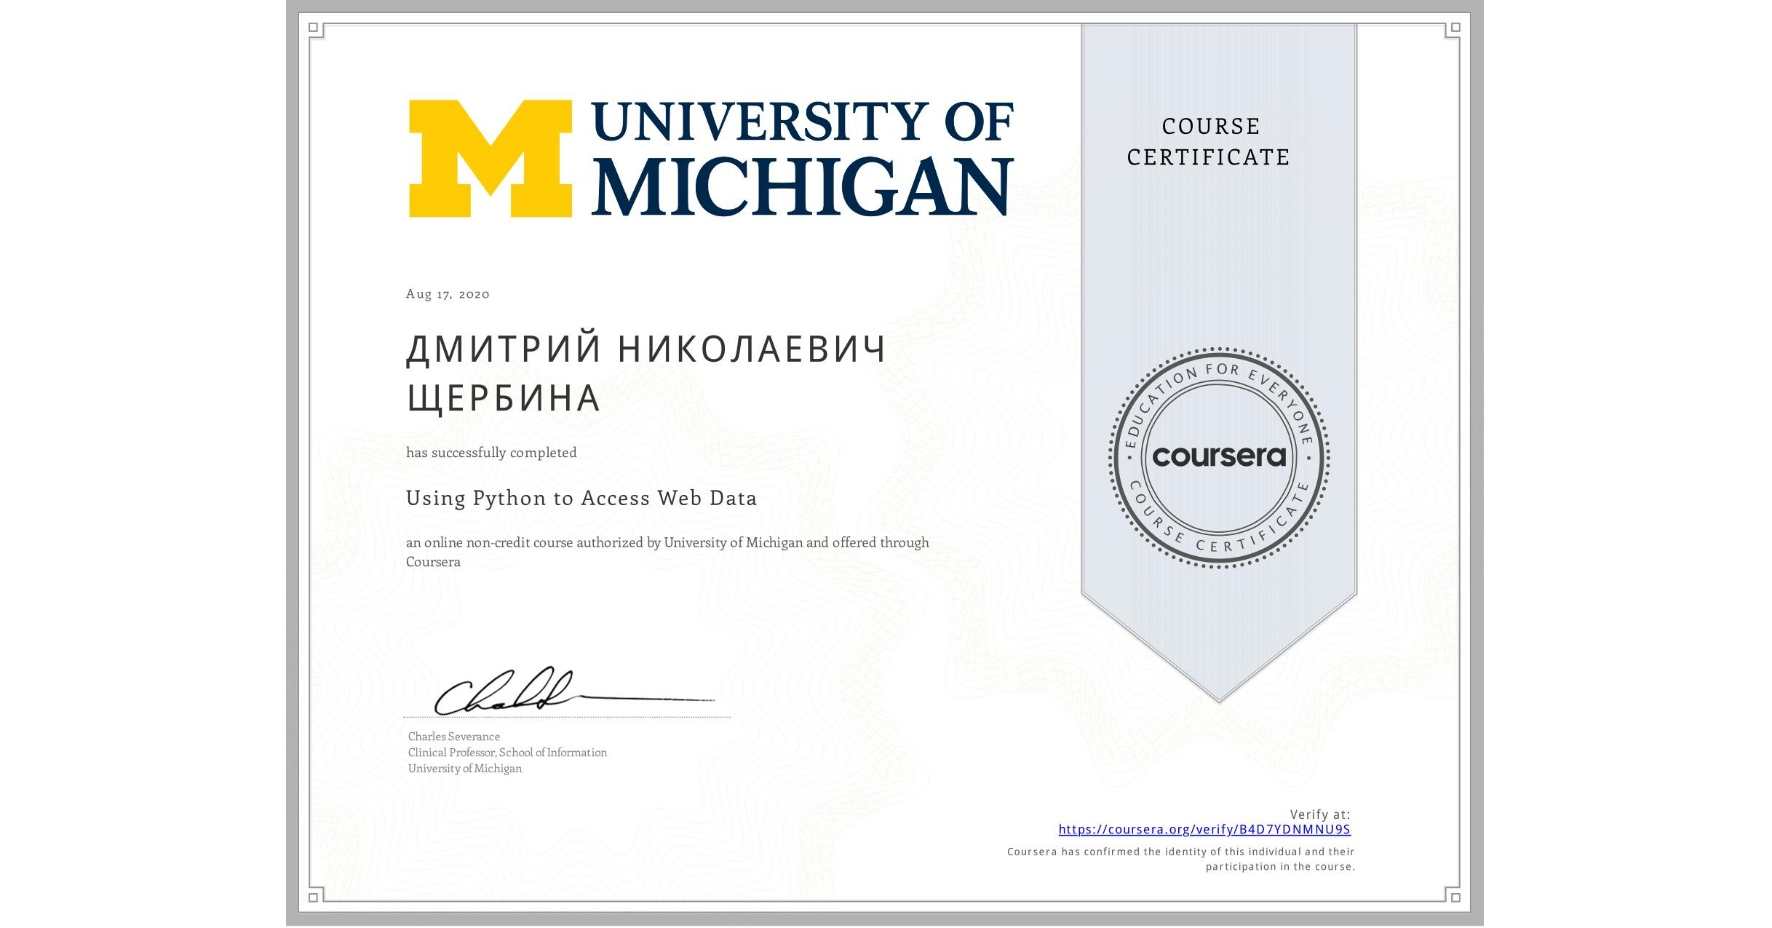 View certificate for ДМИТРИЙ НИКОЛАЕВИЧ ЩЕРБИНА, Using Python to Access Web Data, an online non-credit course authorized by University of Michigan and offered through Coursera